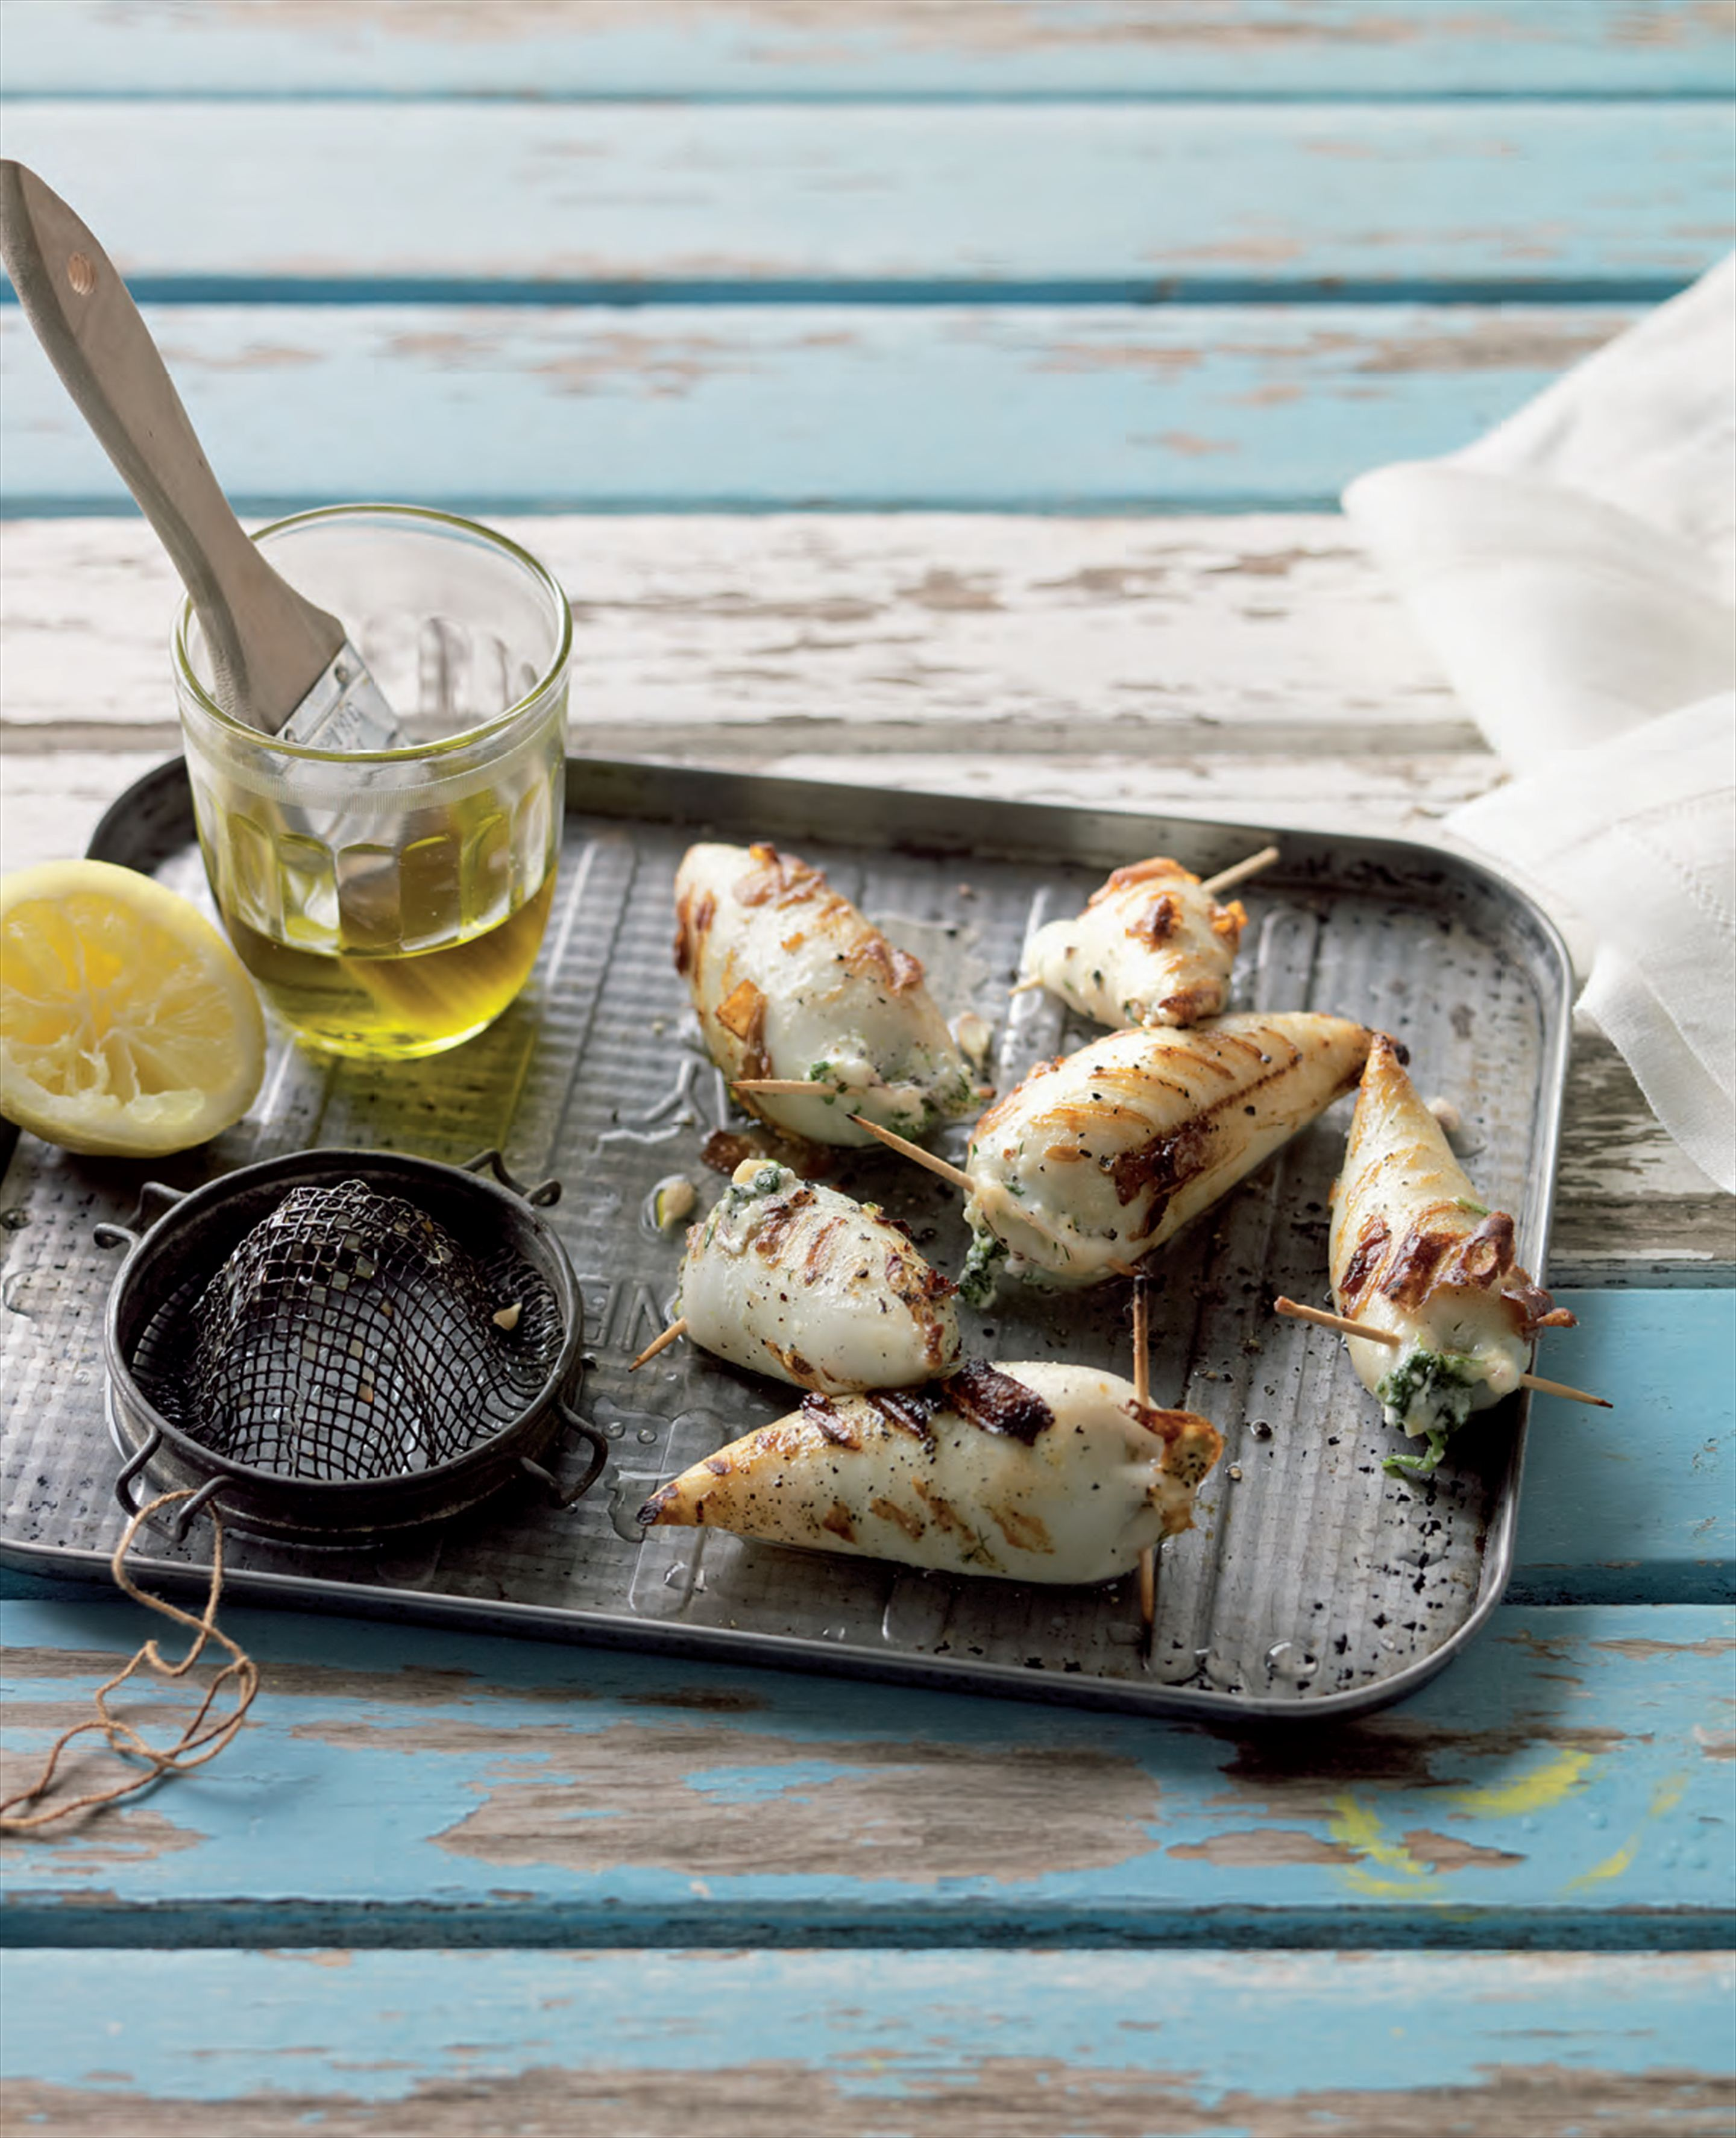 Barbecued squid filled with spinach and feta